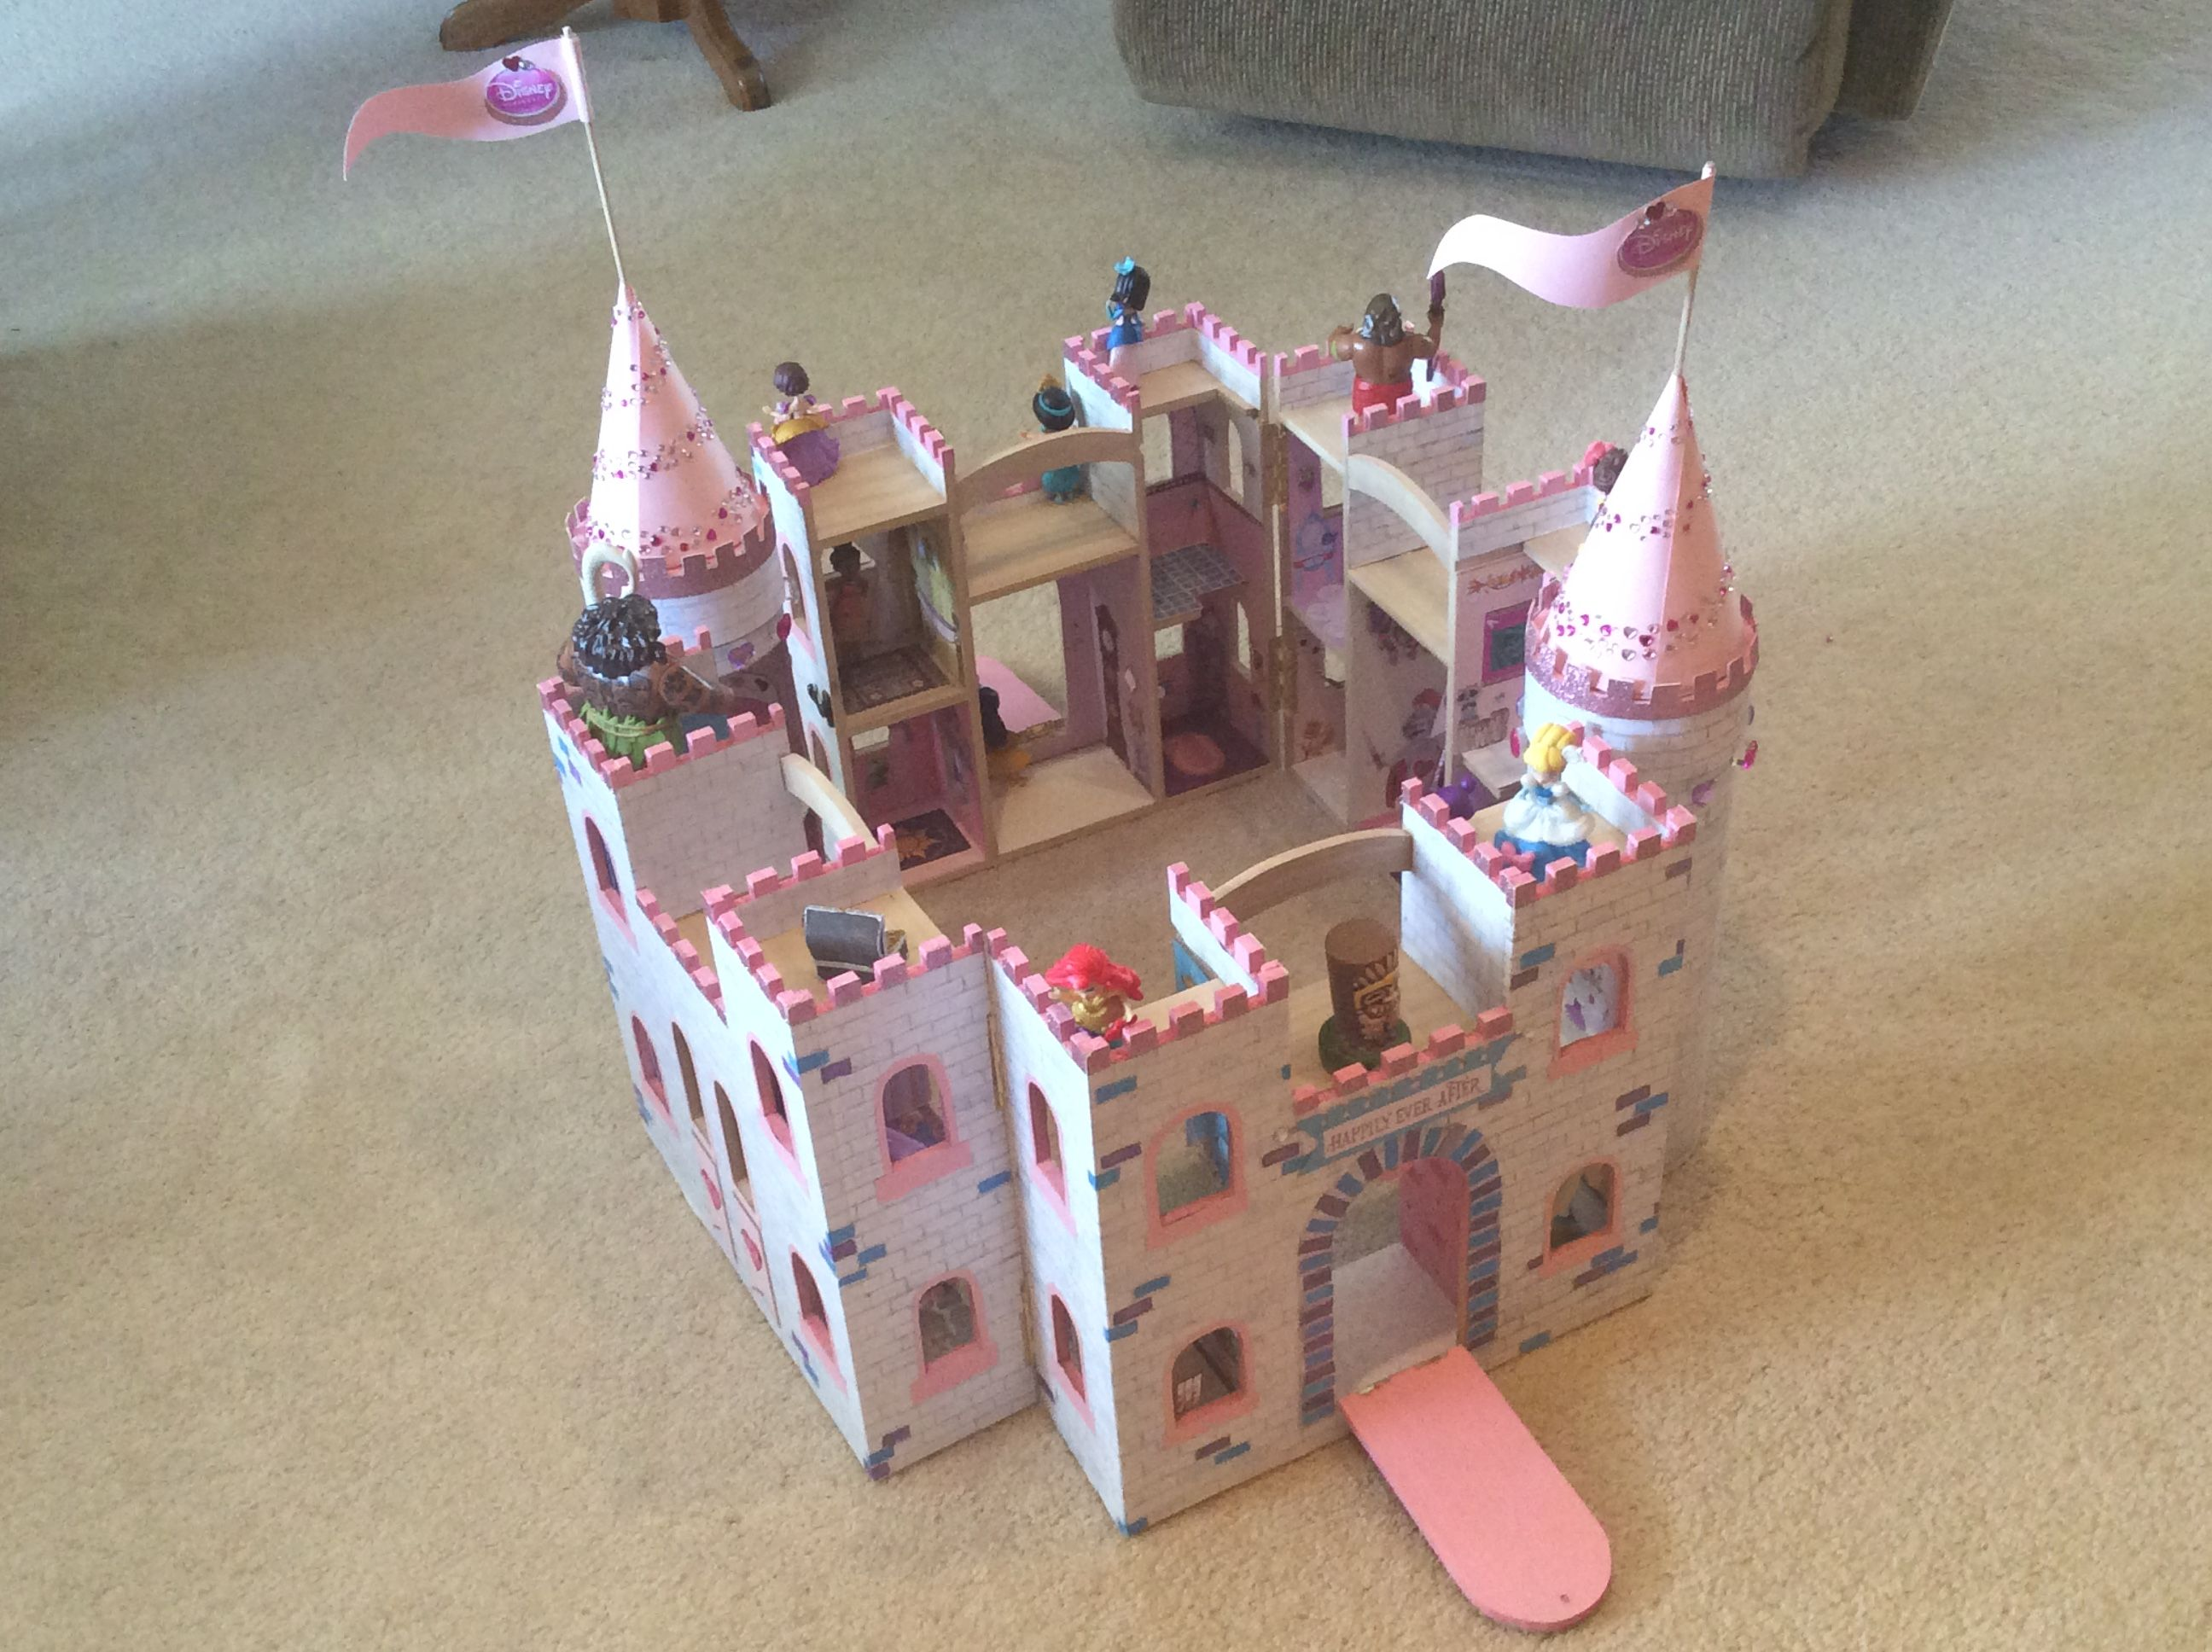 The two castles and towers combined to form one big castle